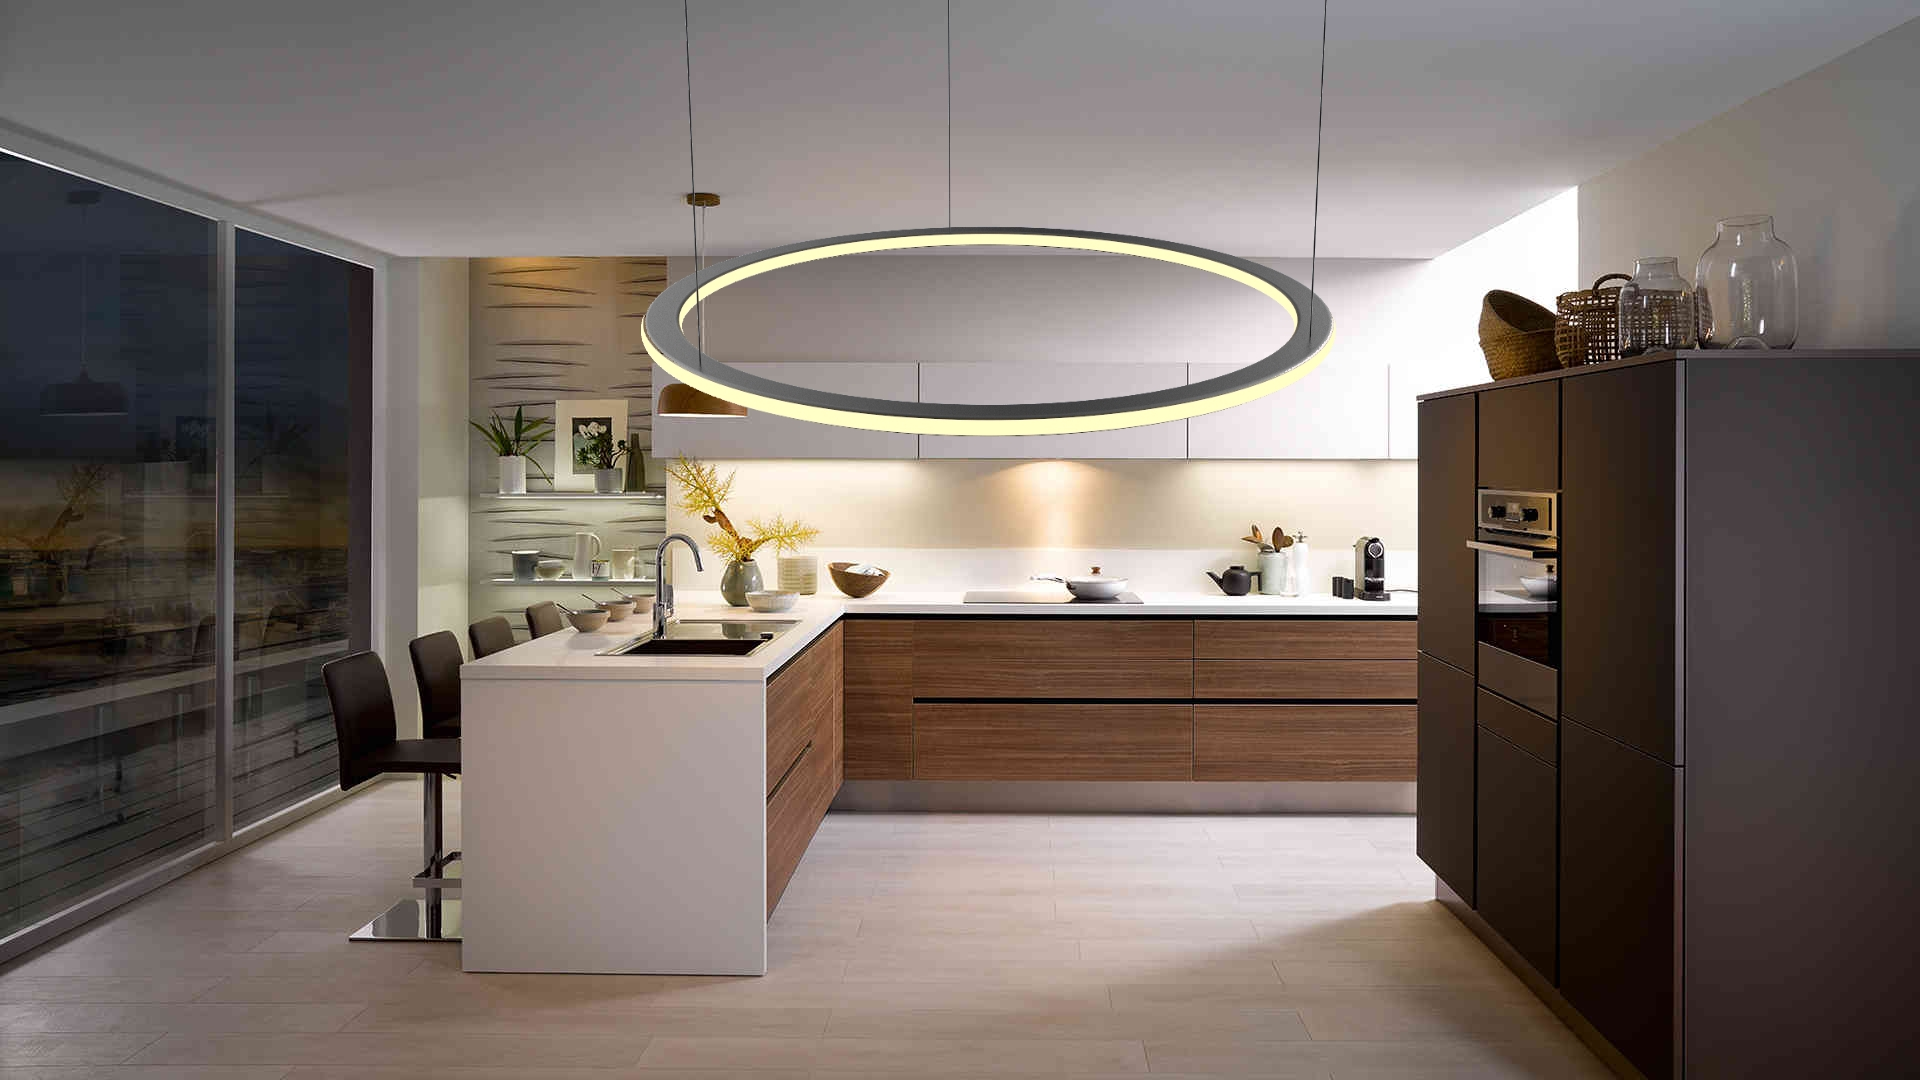 Eclairage A Suspension Led Design Cercle 45w Dimmable